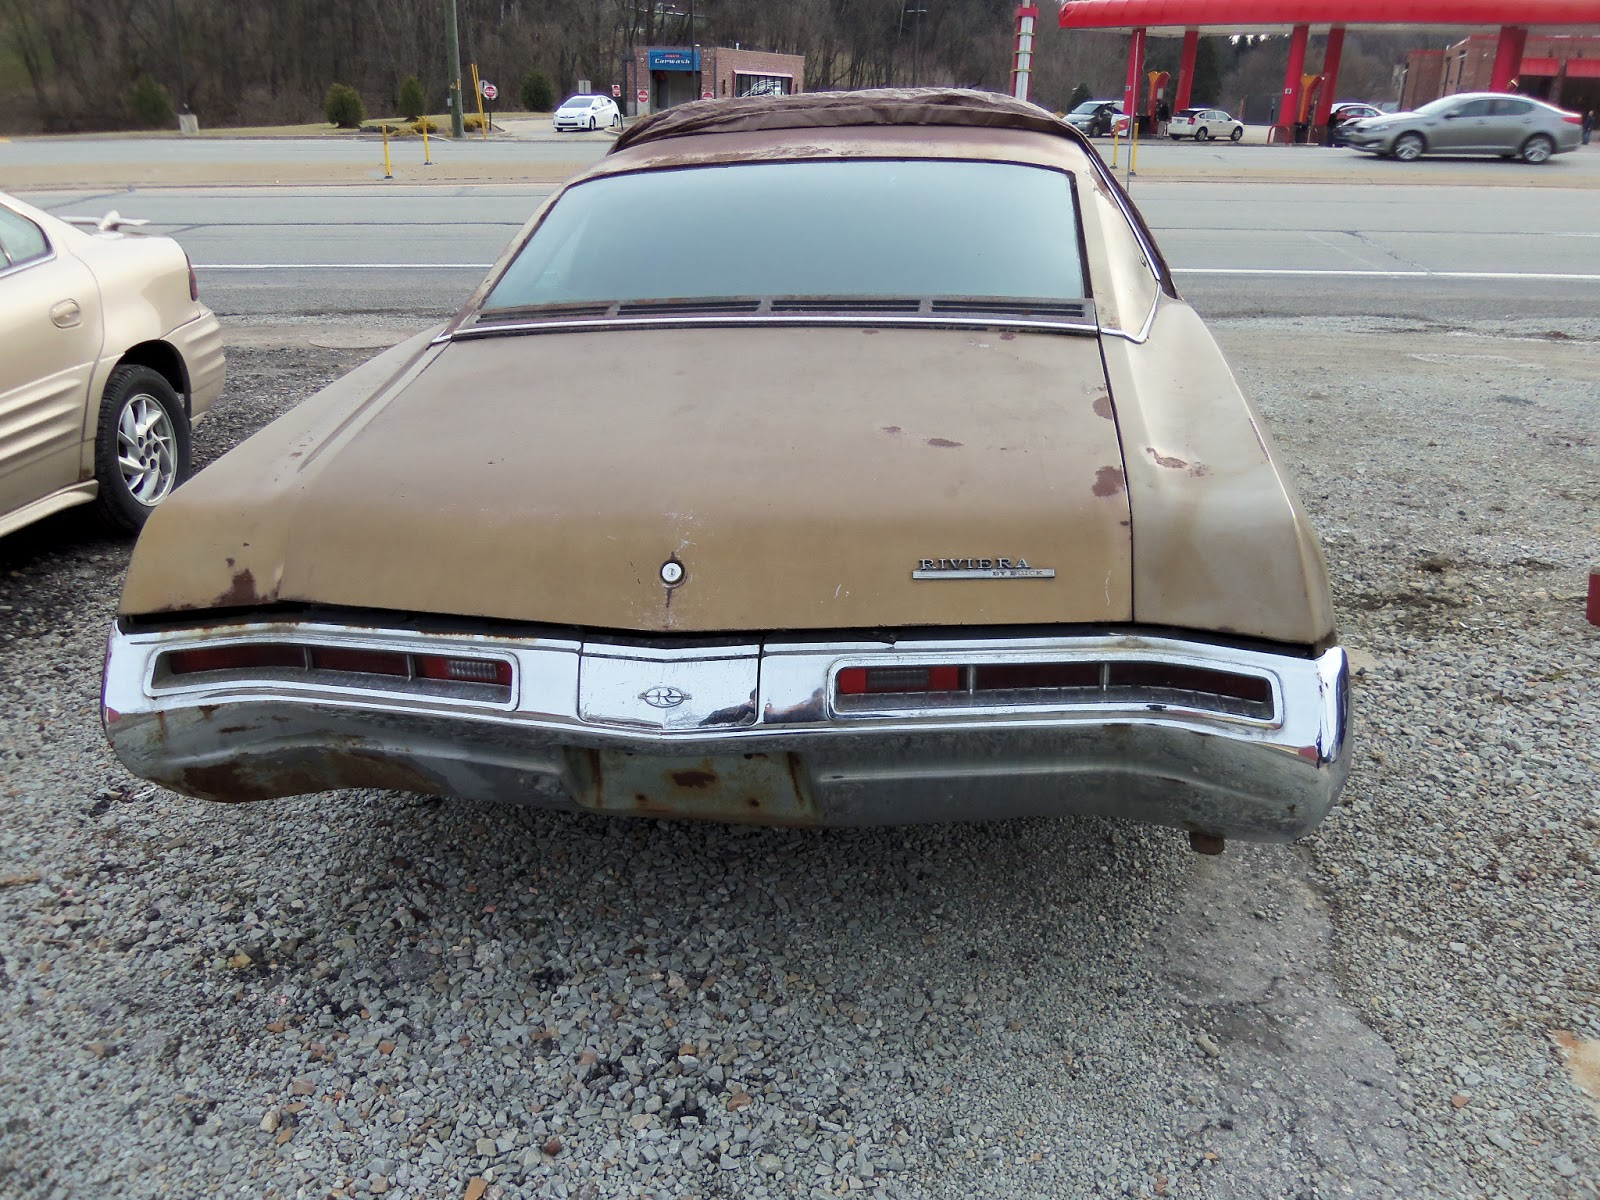 1969 Buick Riviera GS: Craigslist Capture | Wayward Cars: All things